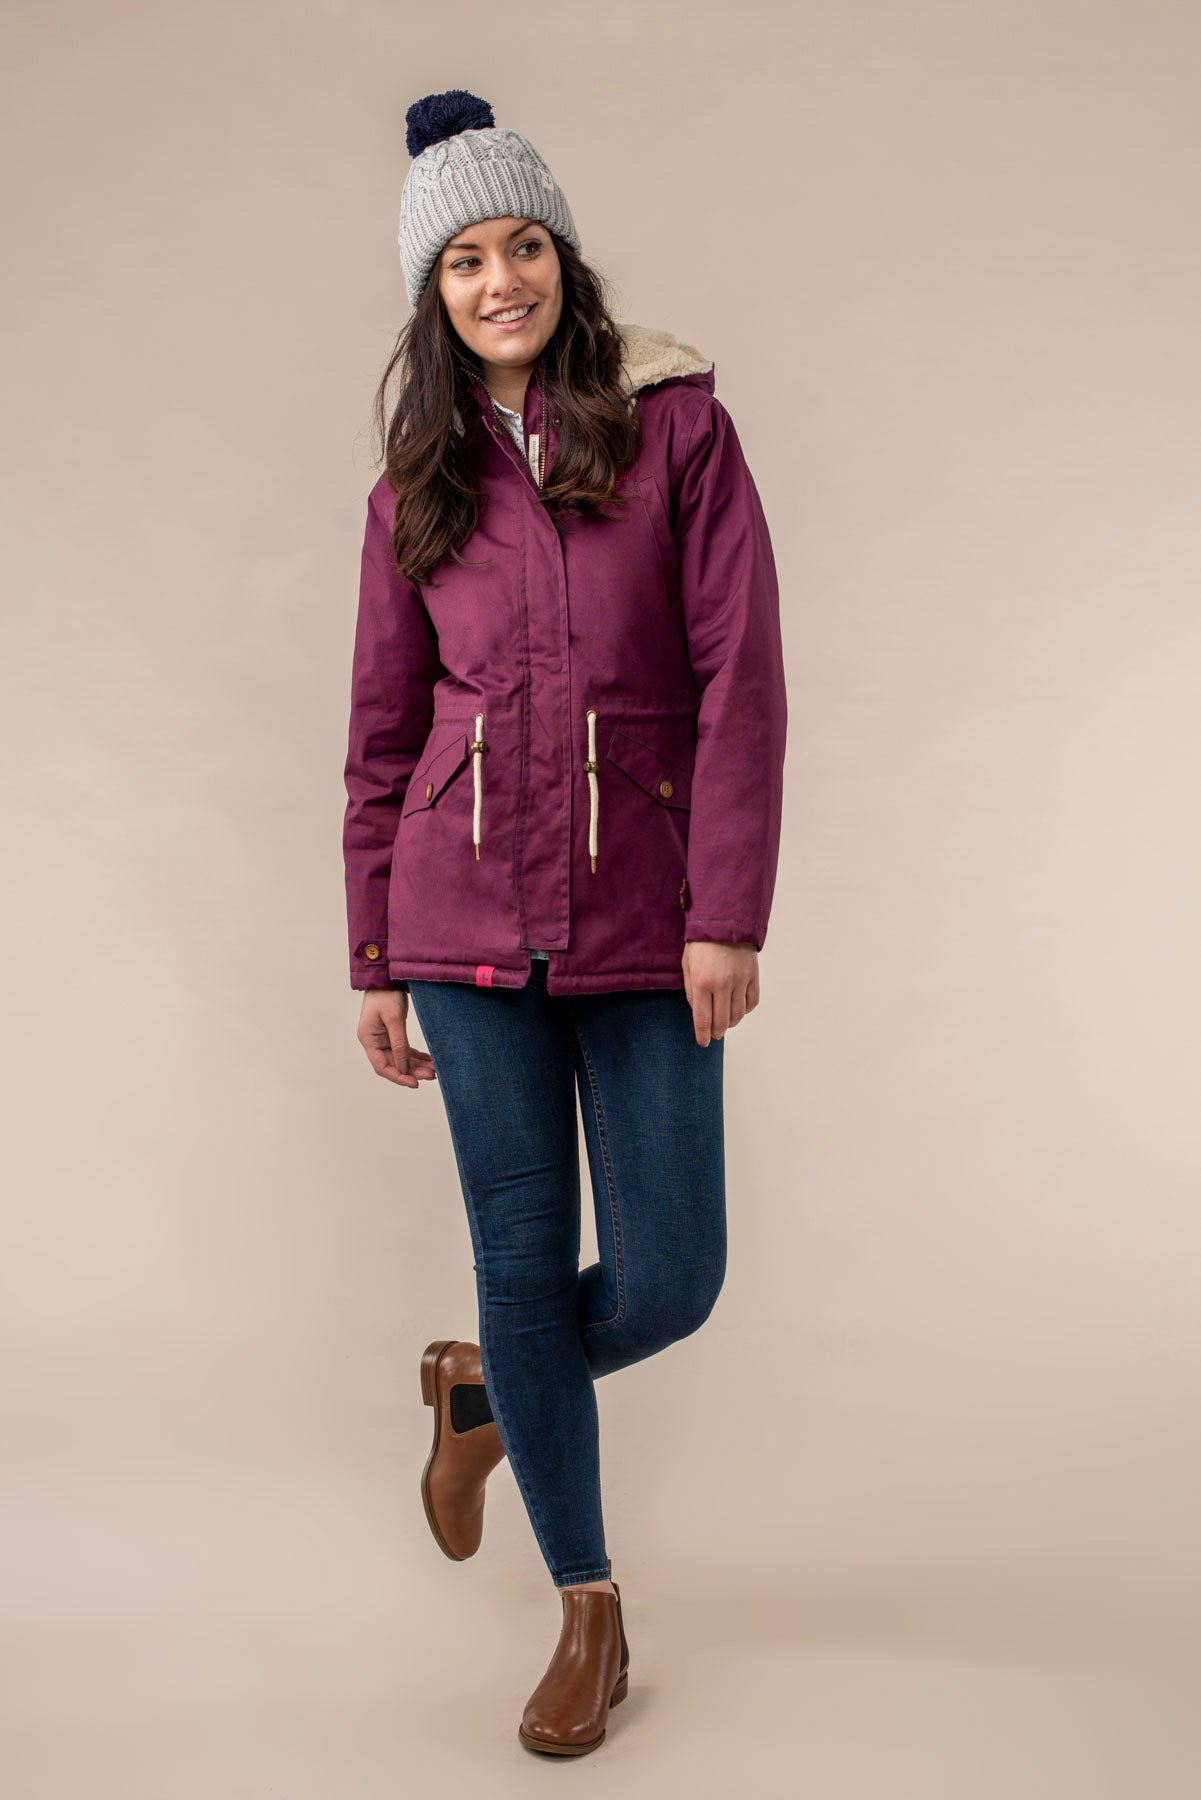 Raven Coat - Plum, Womens fleece lined waterproof purple raincoat | Lighthouse